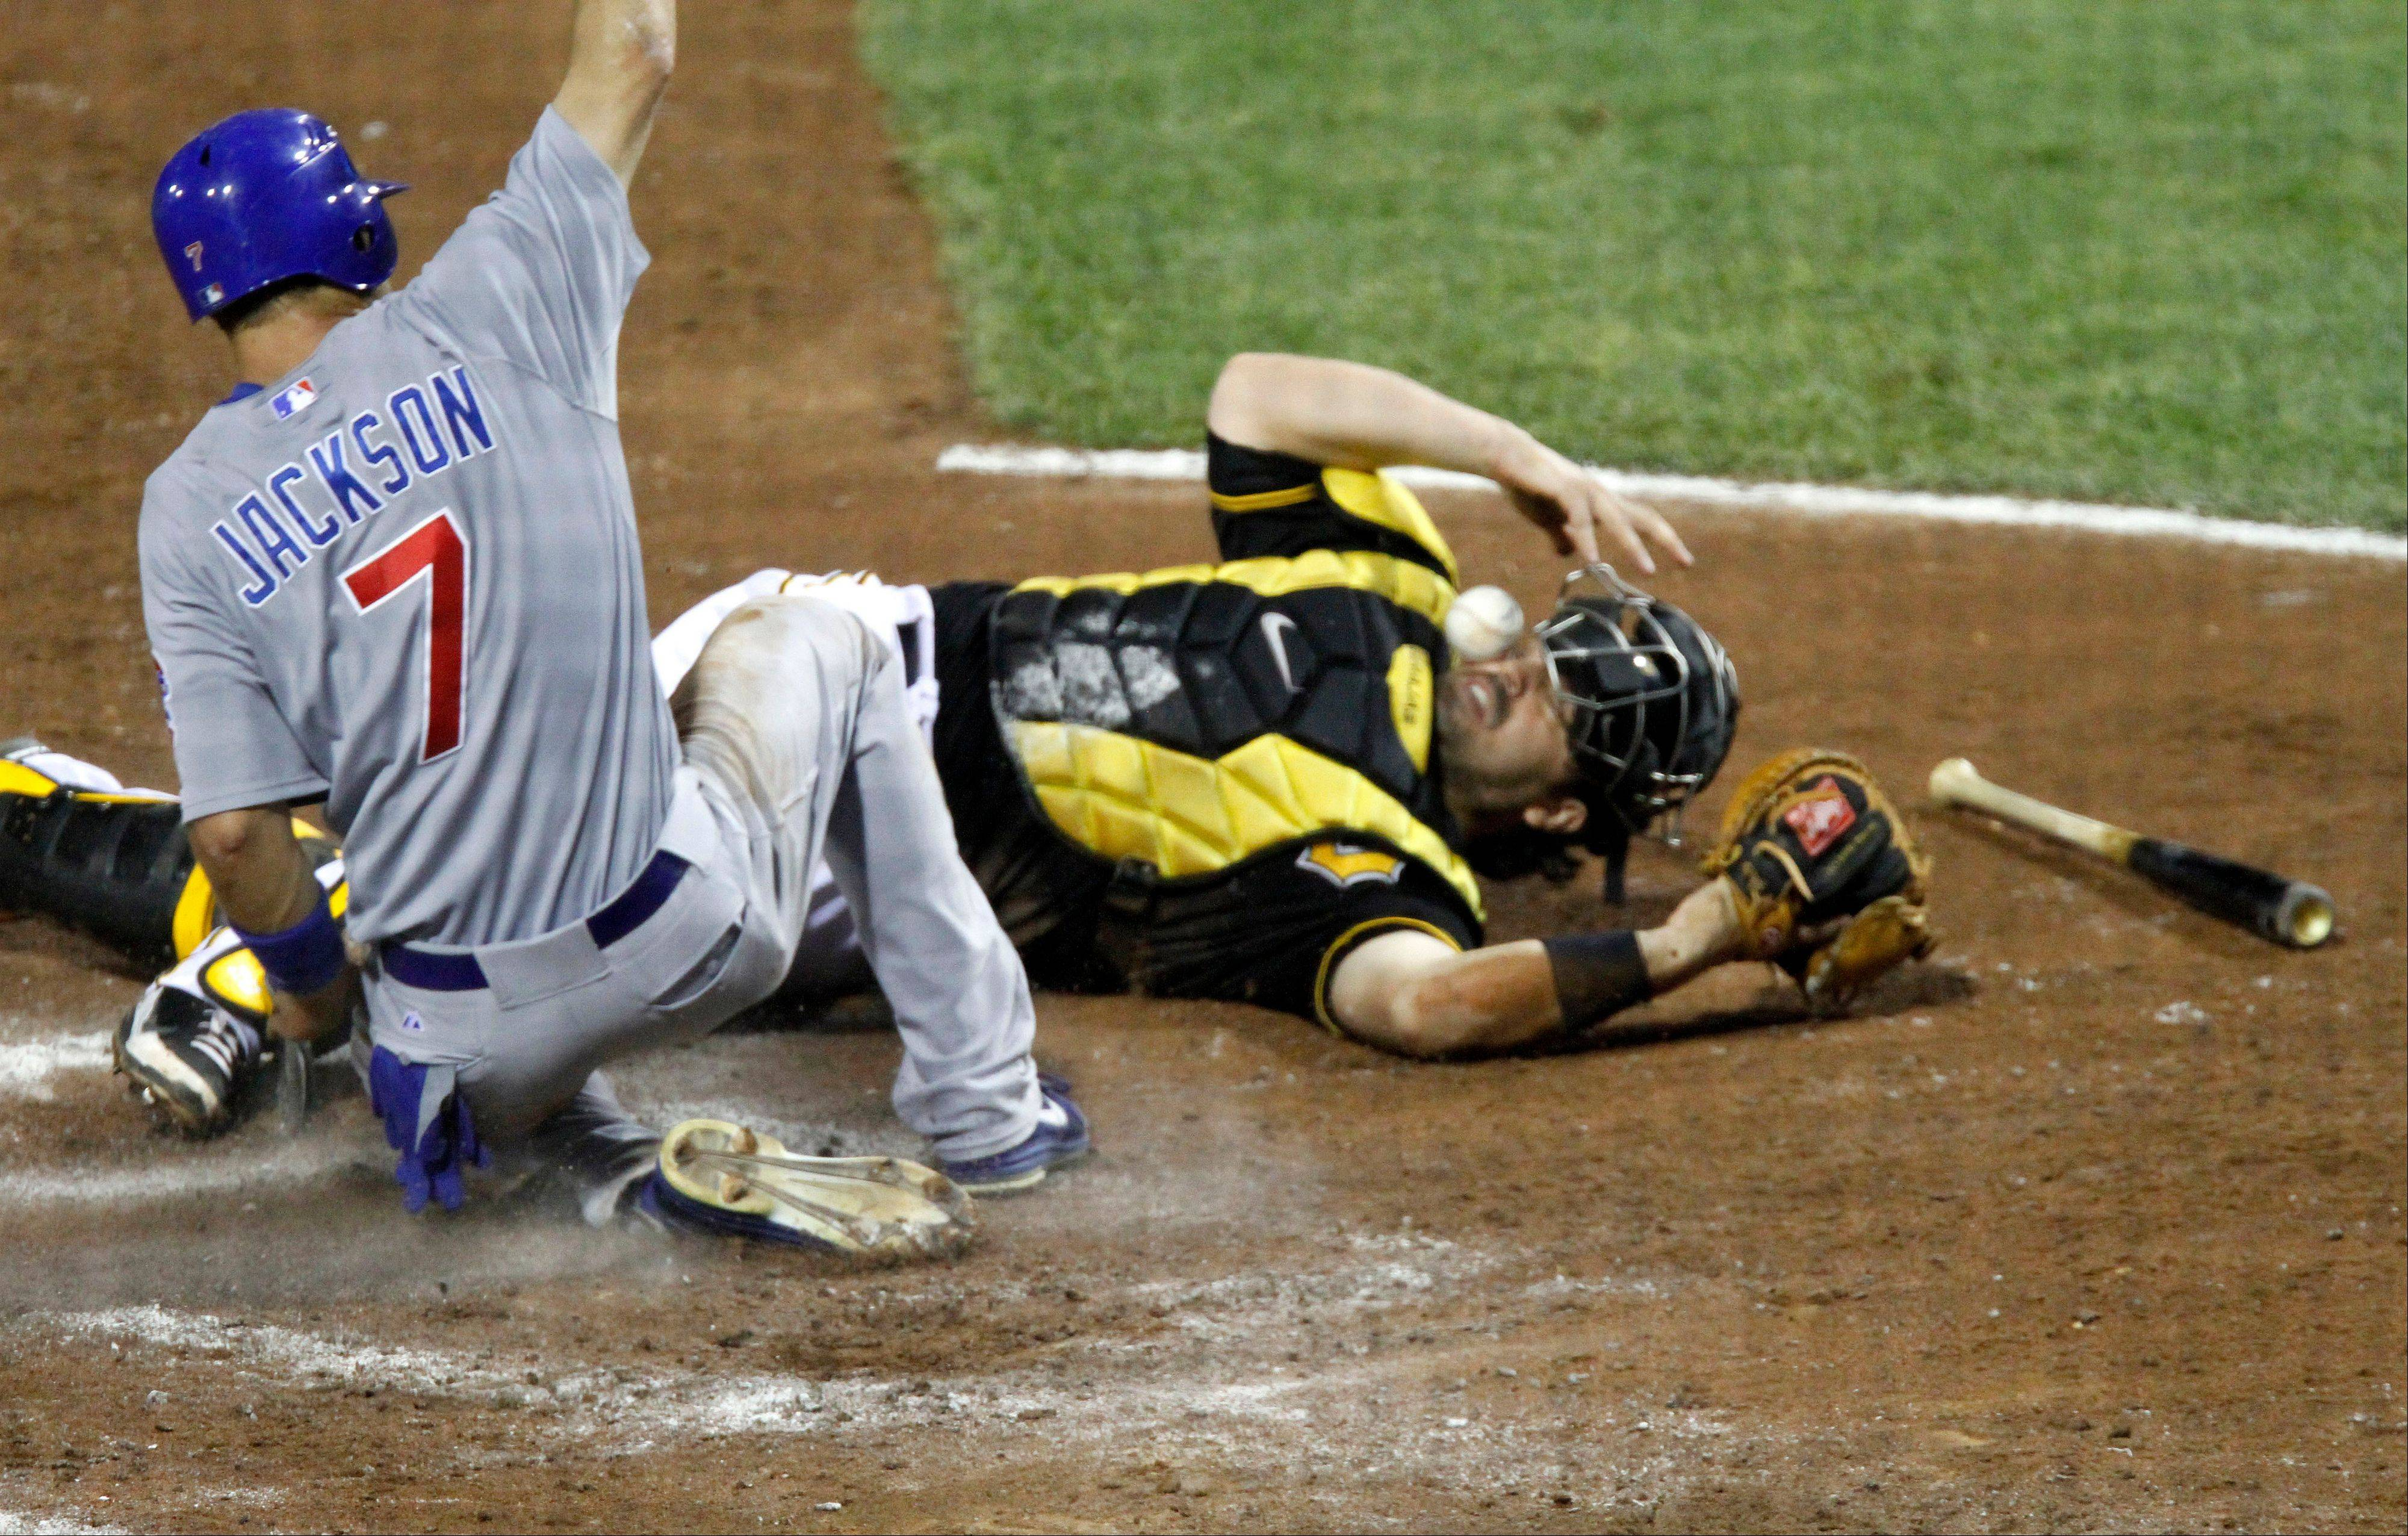 Brett Jackson scores as Pittsburgh Pirates catcher Rod Barajas loses the ball on the throw from first baseman Gaby Sanchez in the sixth inning Friday.